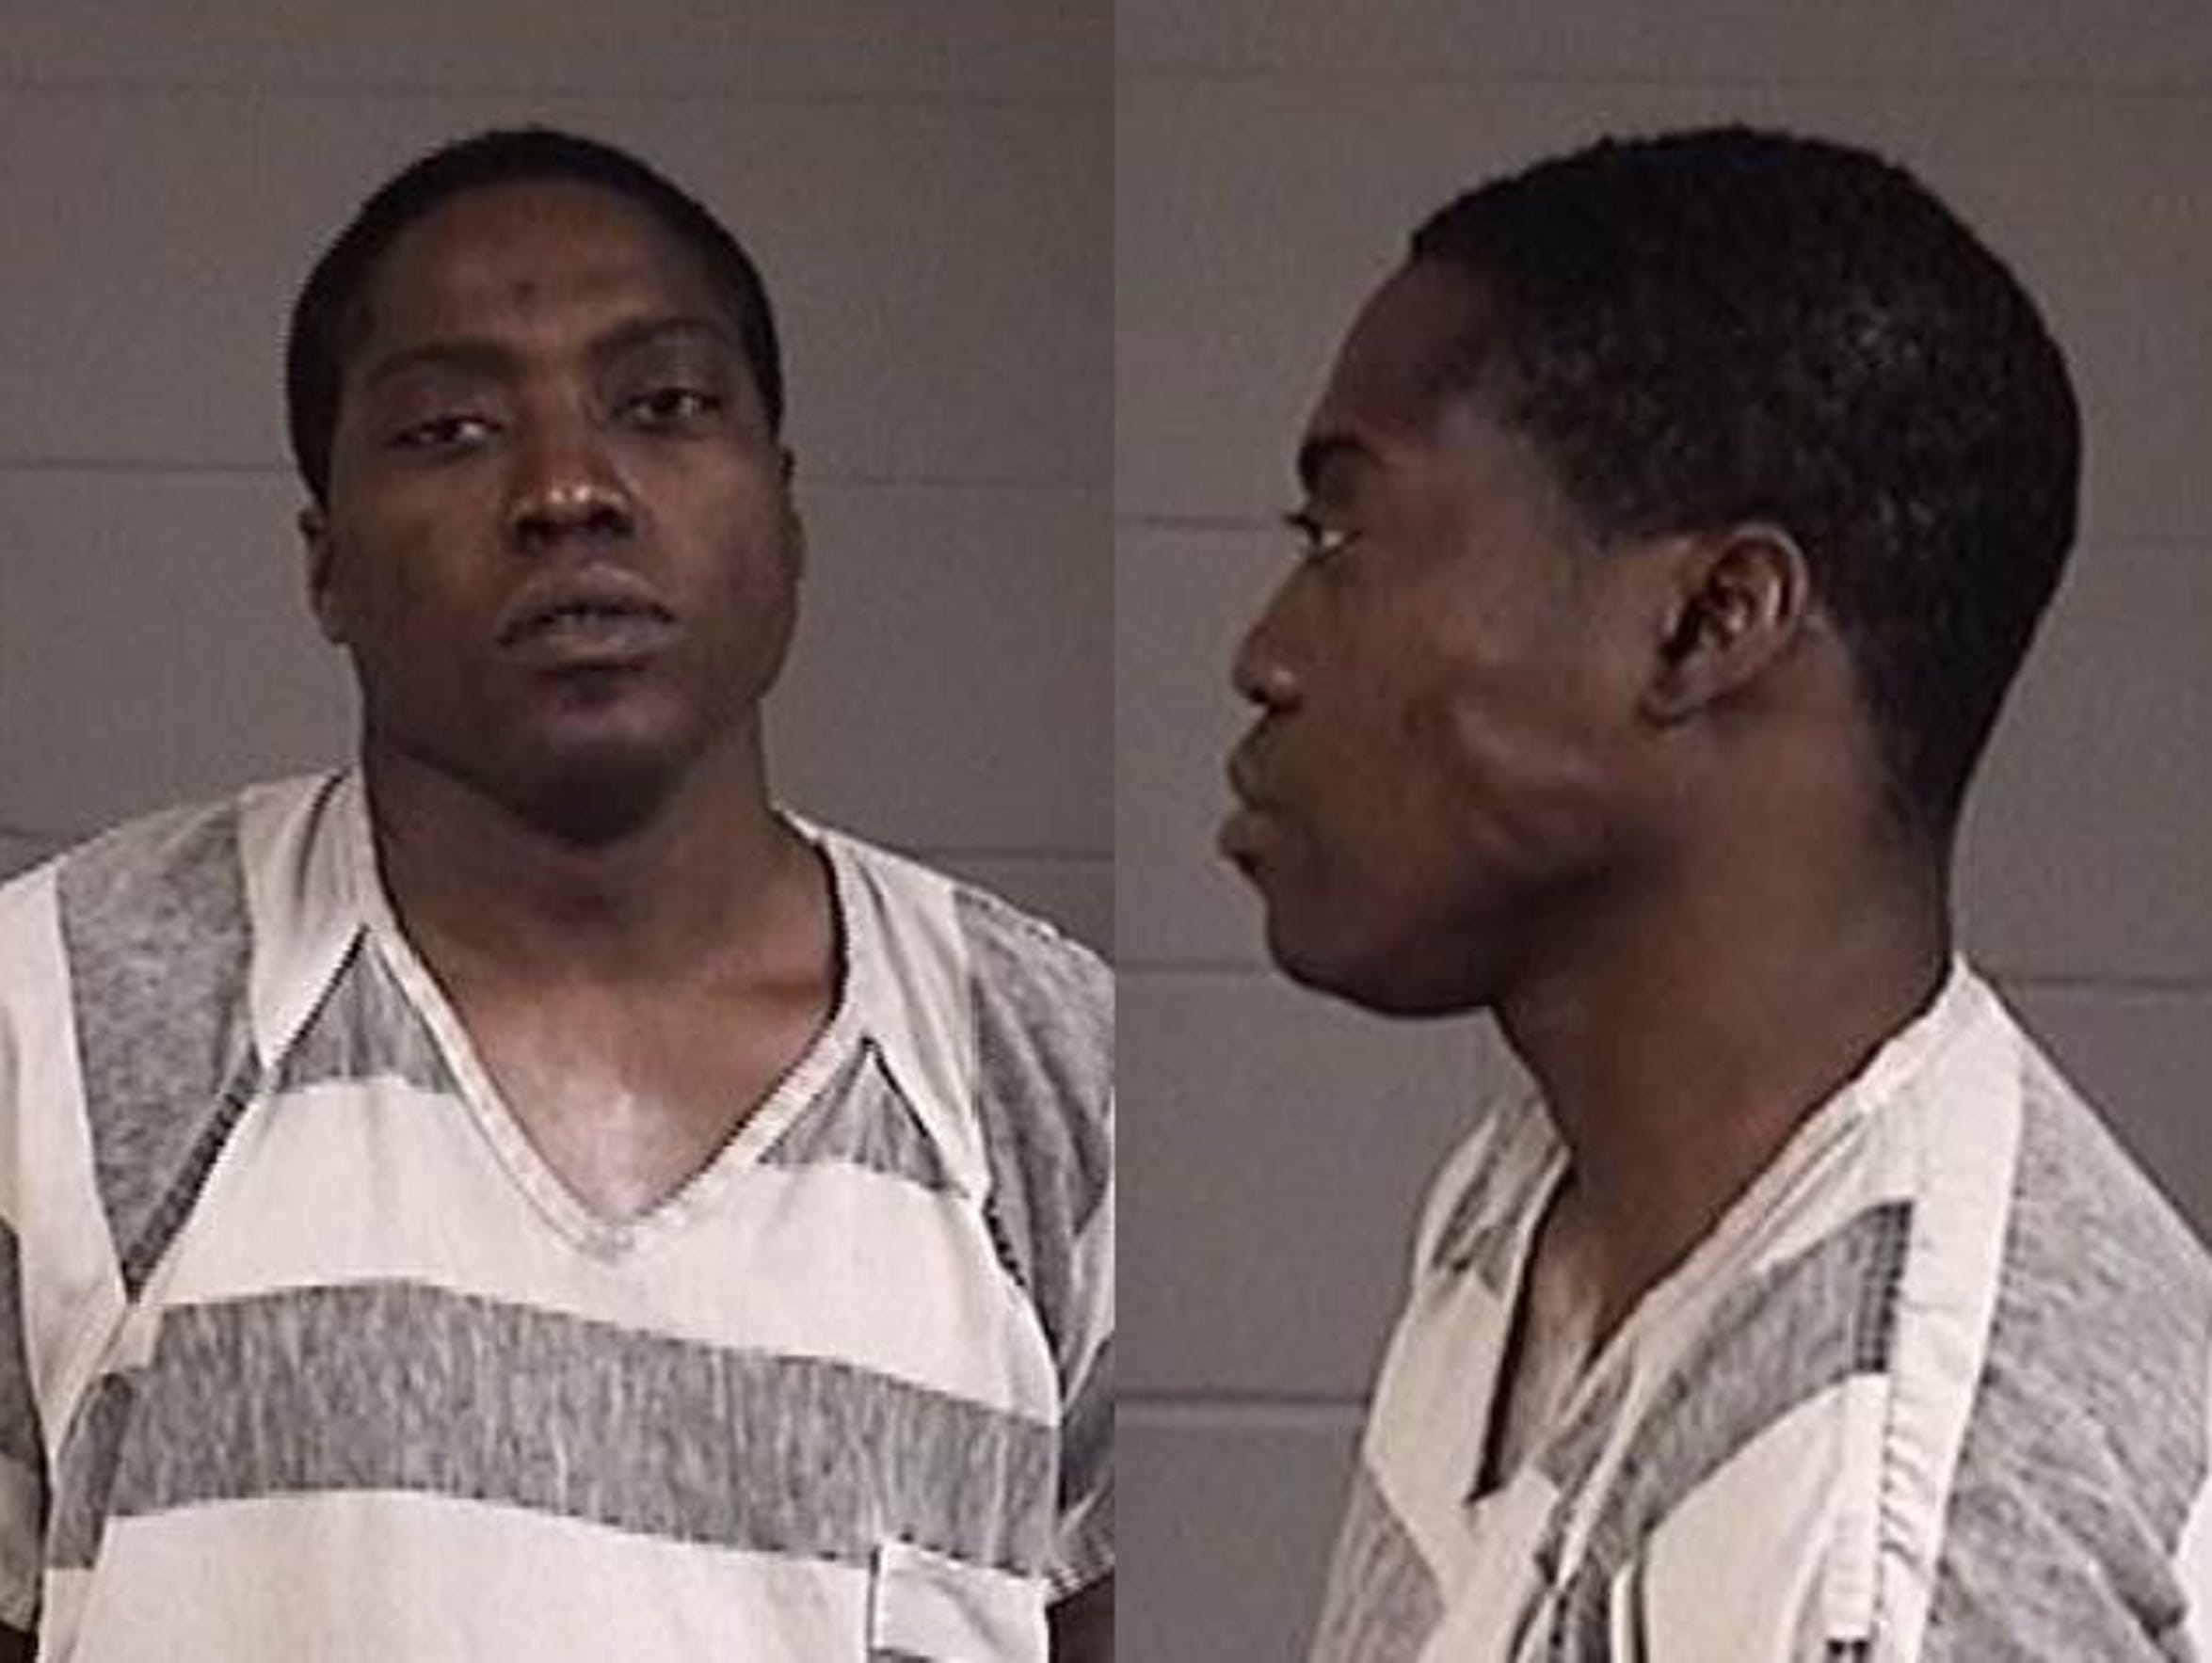 Frederick James McAbee, 41, is considered armed and